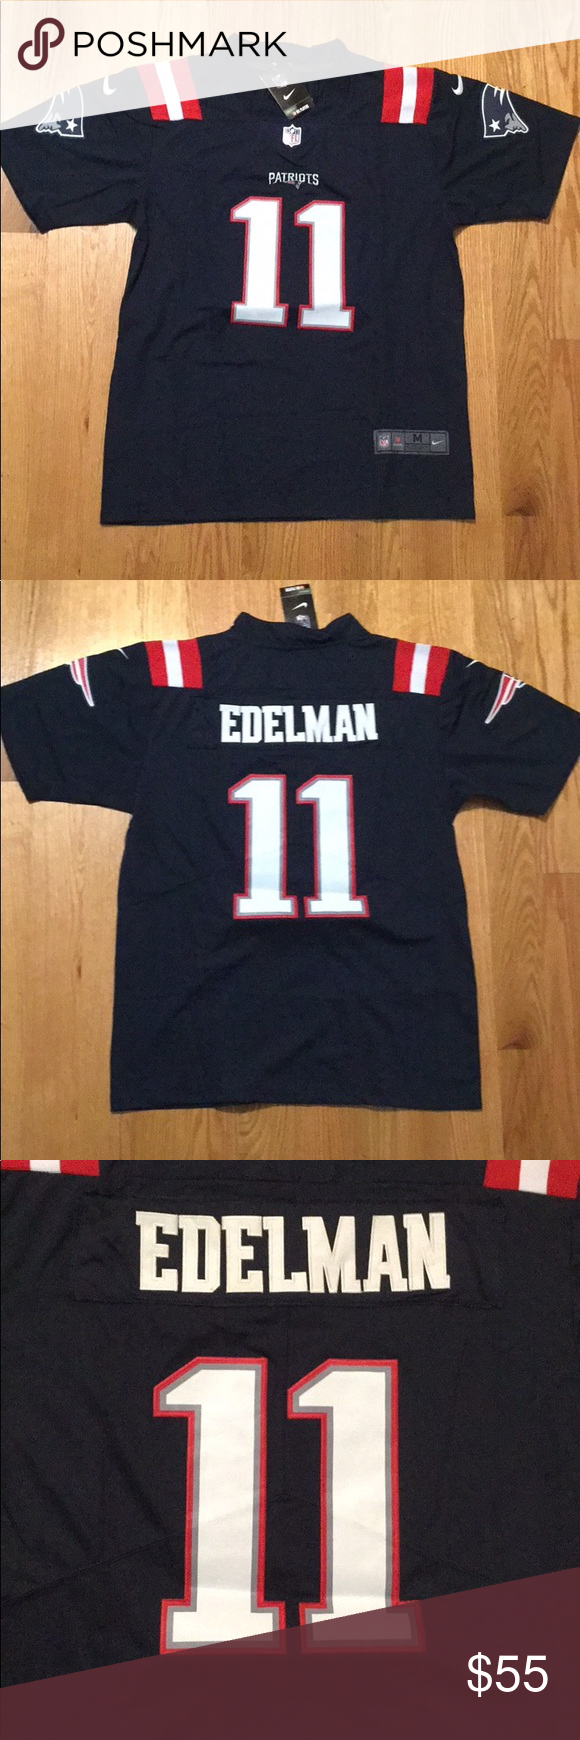 low cost 99540 02286 New England Patriots #11 Julian Edelman Jersey New with tags ...